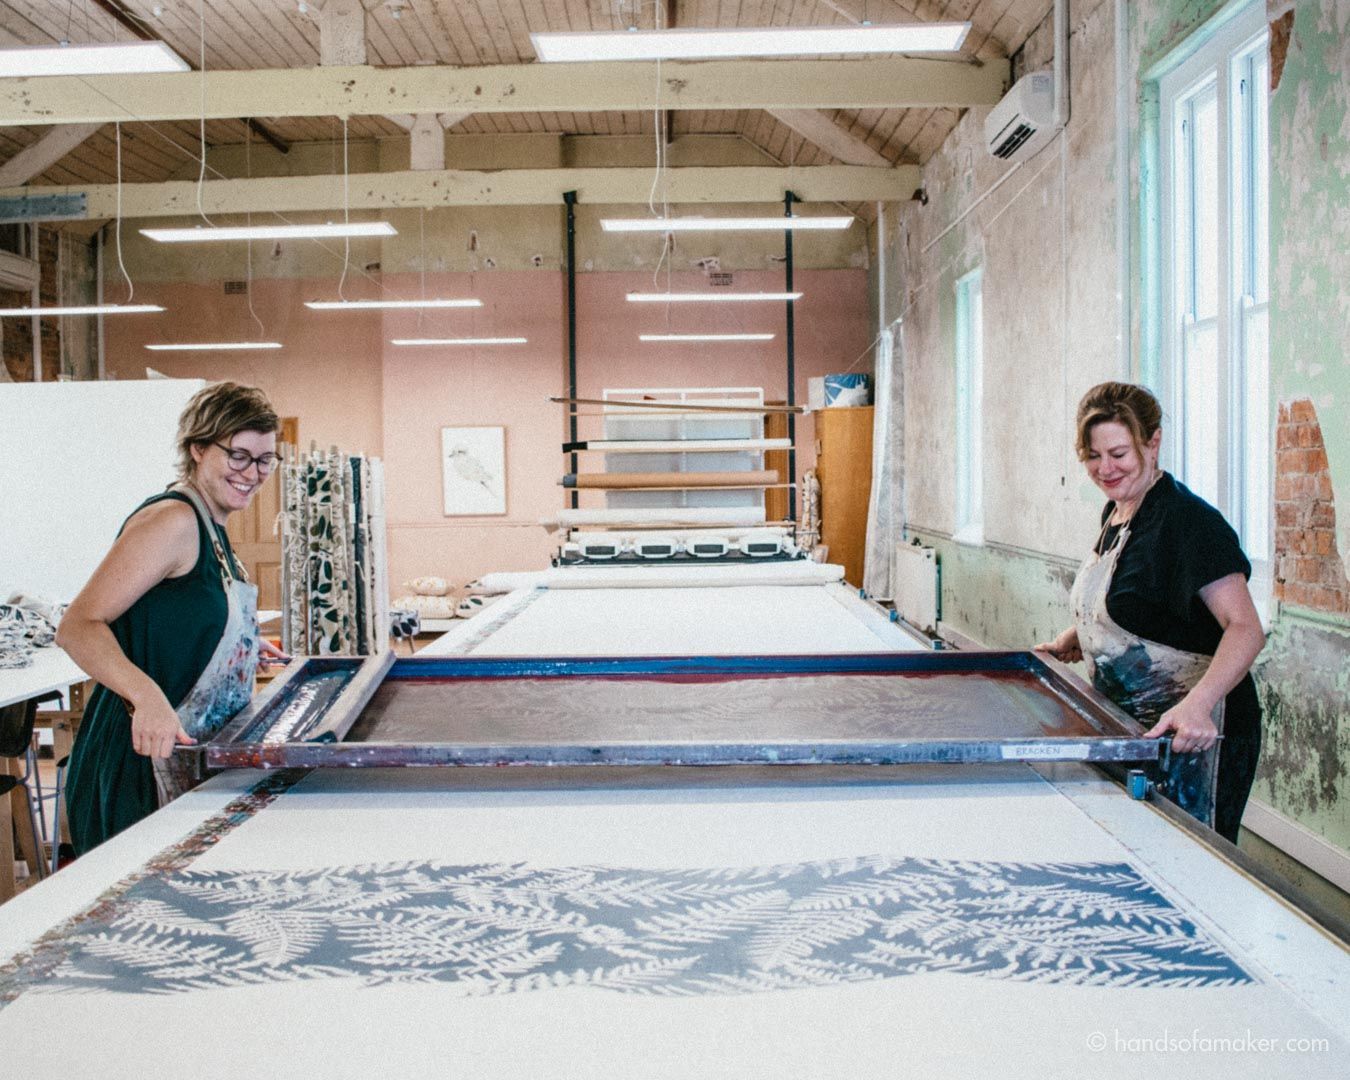 The Maker's Series   A Visit to Ink & Spindle's Beautiful Studio